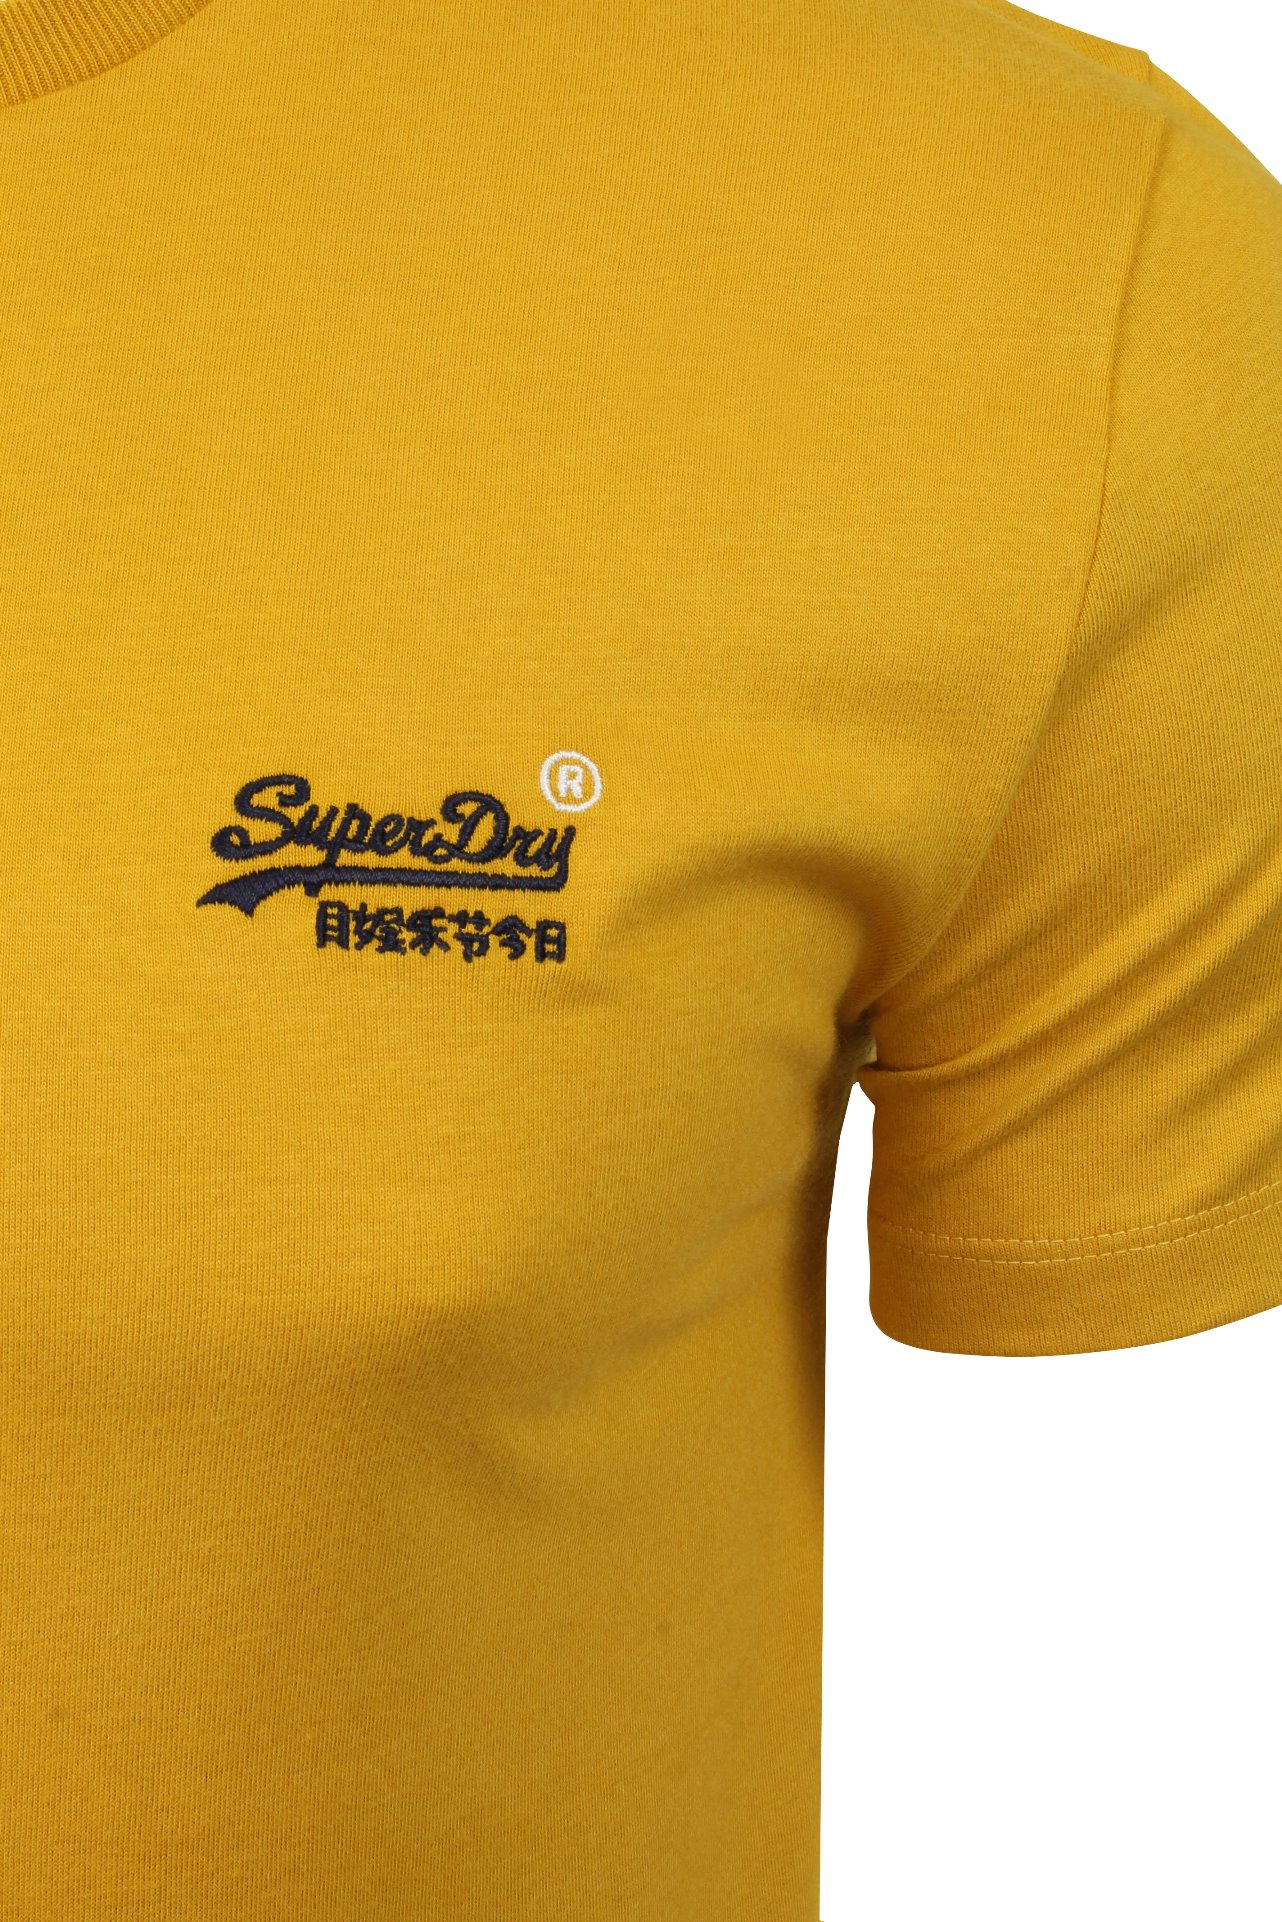 Superdry-Mens-T-Shirt-039-OL-Vintage-Embroidery-Tee-039-Short-Sleeved thumbnail 16